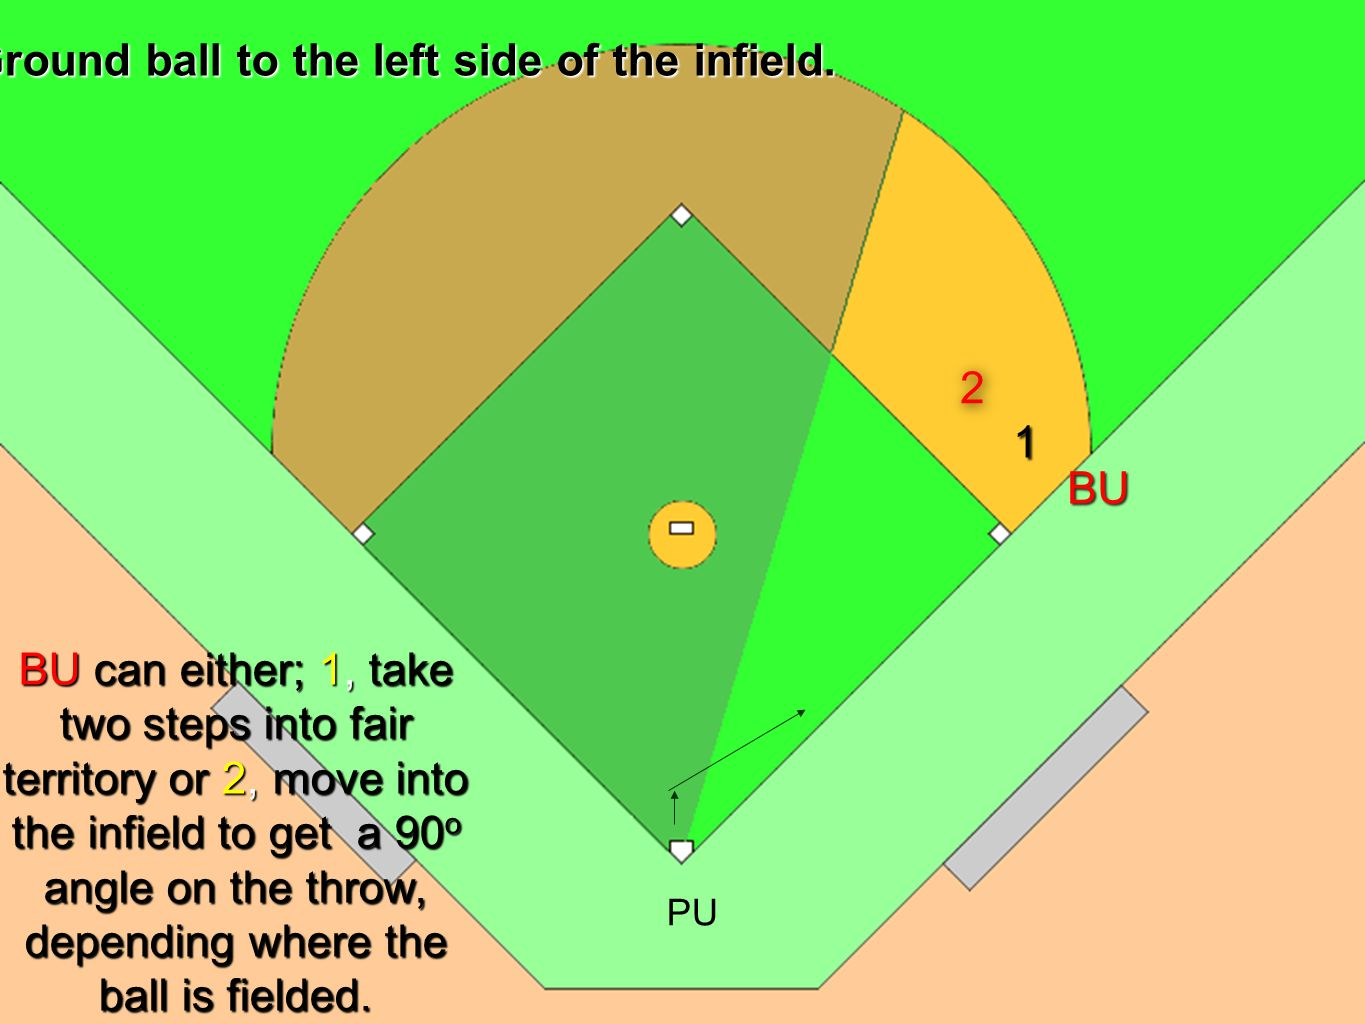 U1 U2U3 Situation 1 No one on base Ground ball hit to the left side of the infield, from the 2nd baseman to the 3rd base foul line.